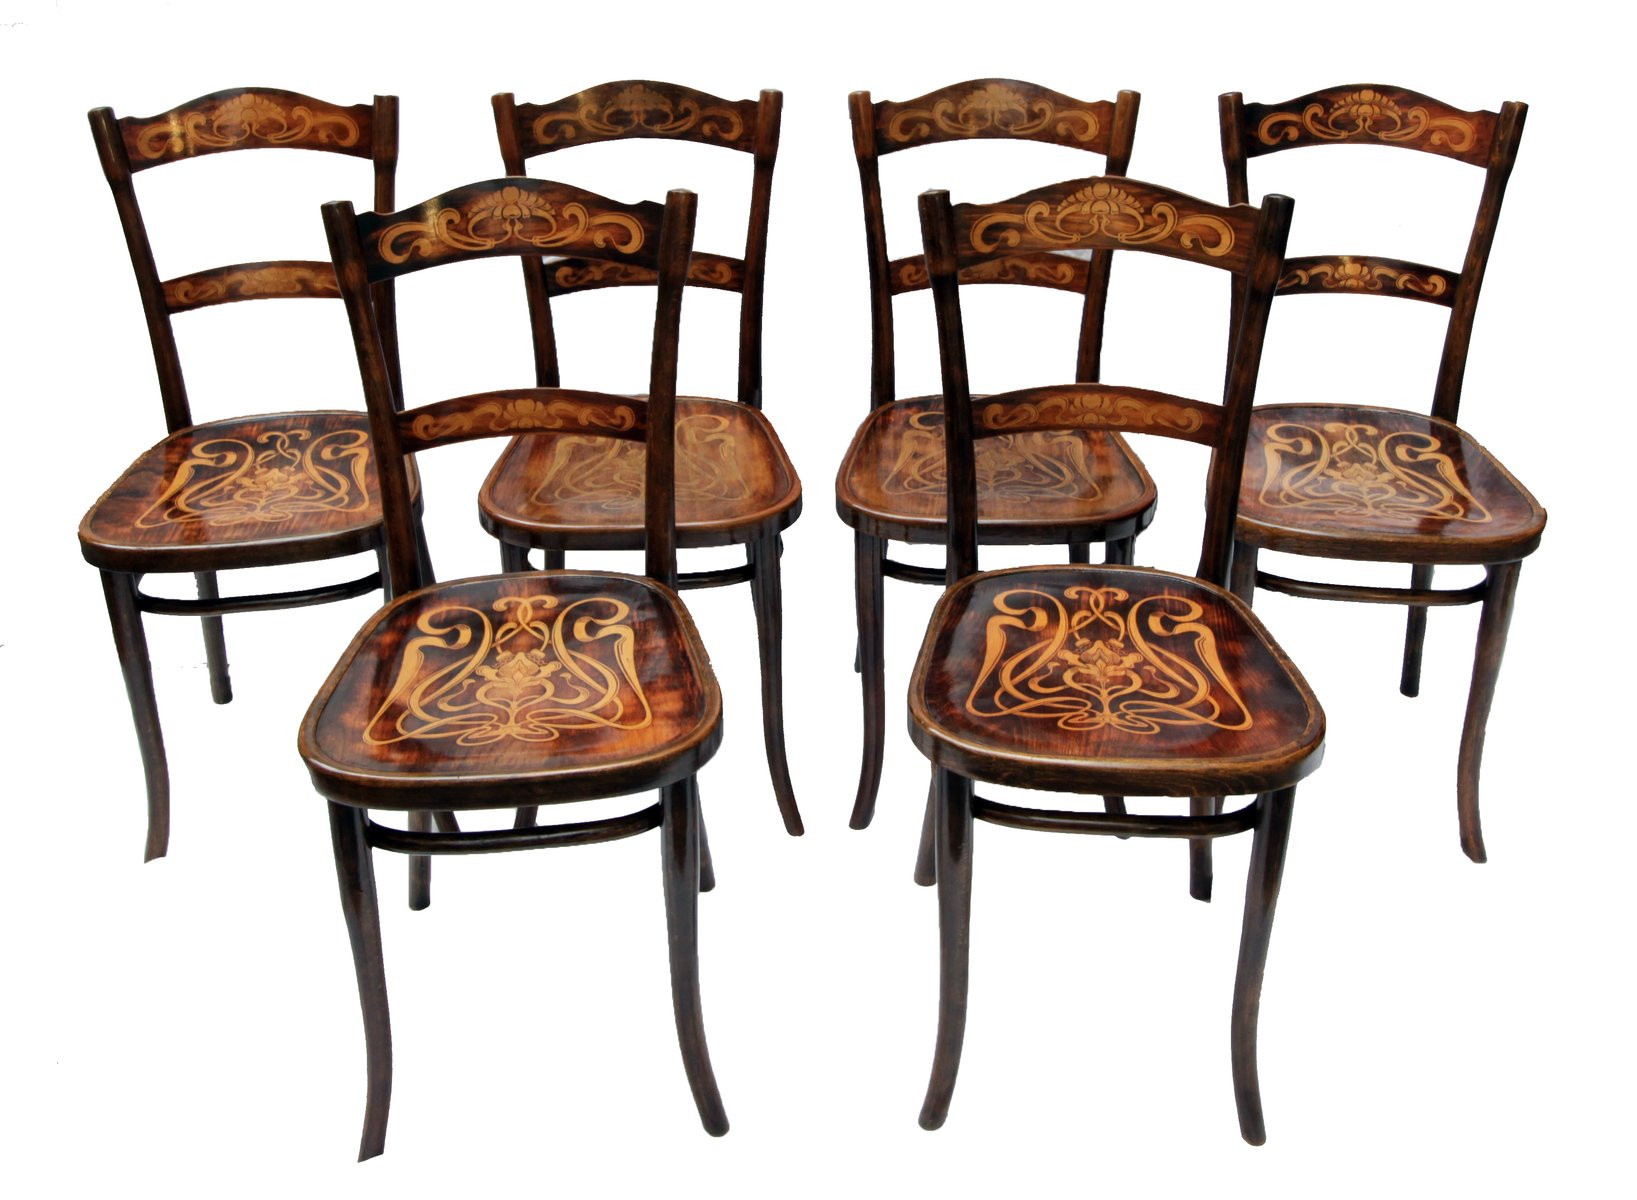 Antique Decorated Bentwood Dining Chairs from Thonet Set of 6 for